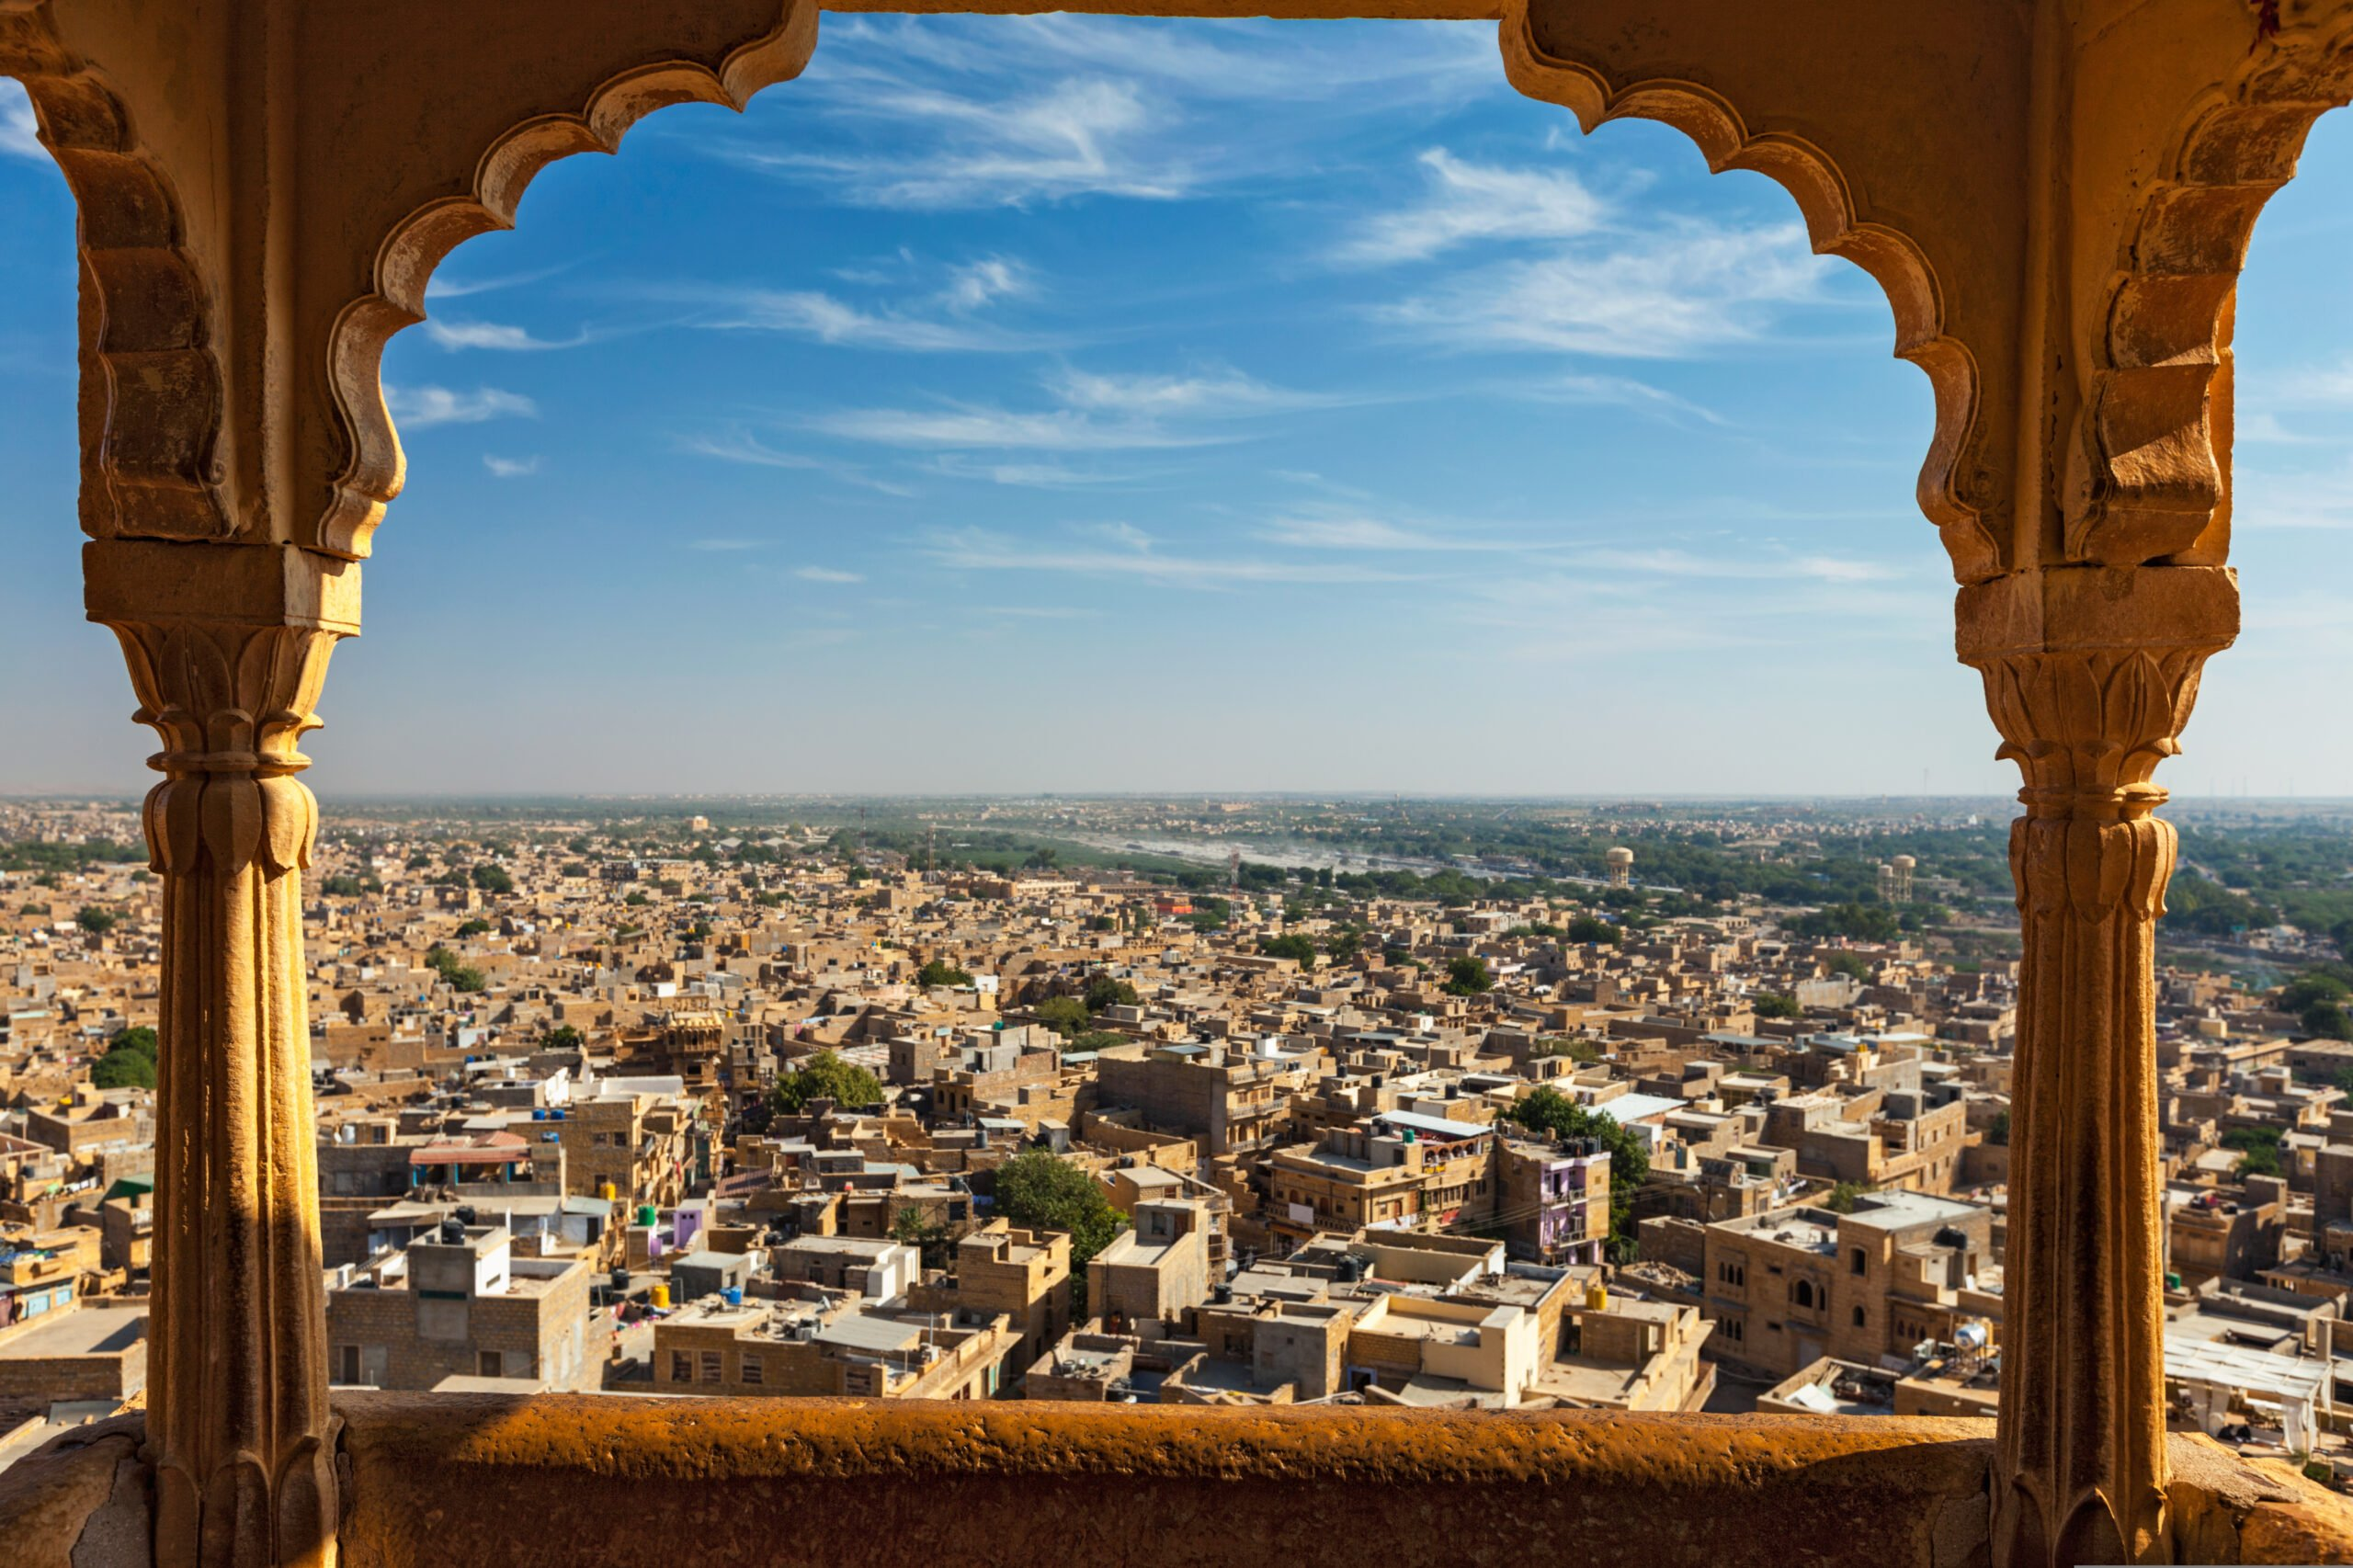 Soak In The Beauty Rajasthan Desert In Our 5 Day Best Of Rajasthan Including Taj Mahal 1 Scaled